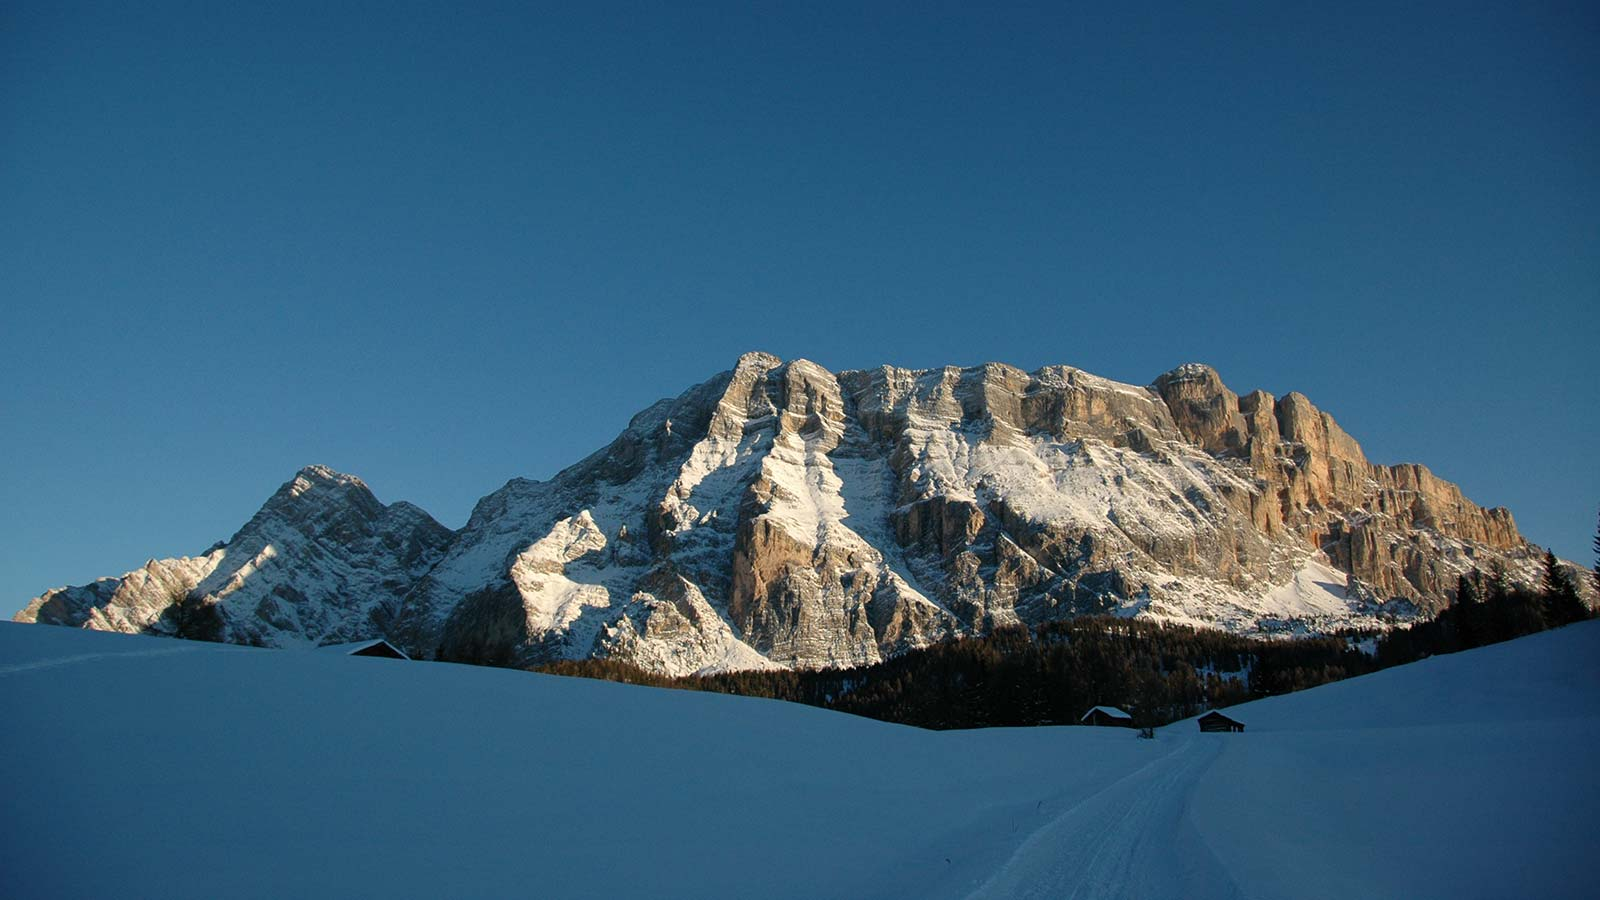 The snow dolomitic landscape of Monte Cavallo with Santa Croce at twilight